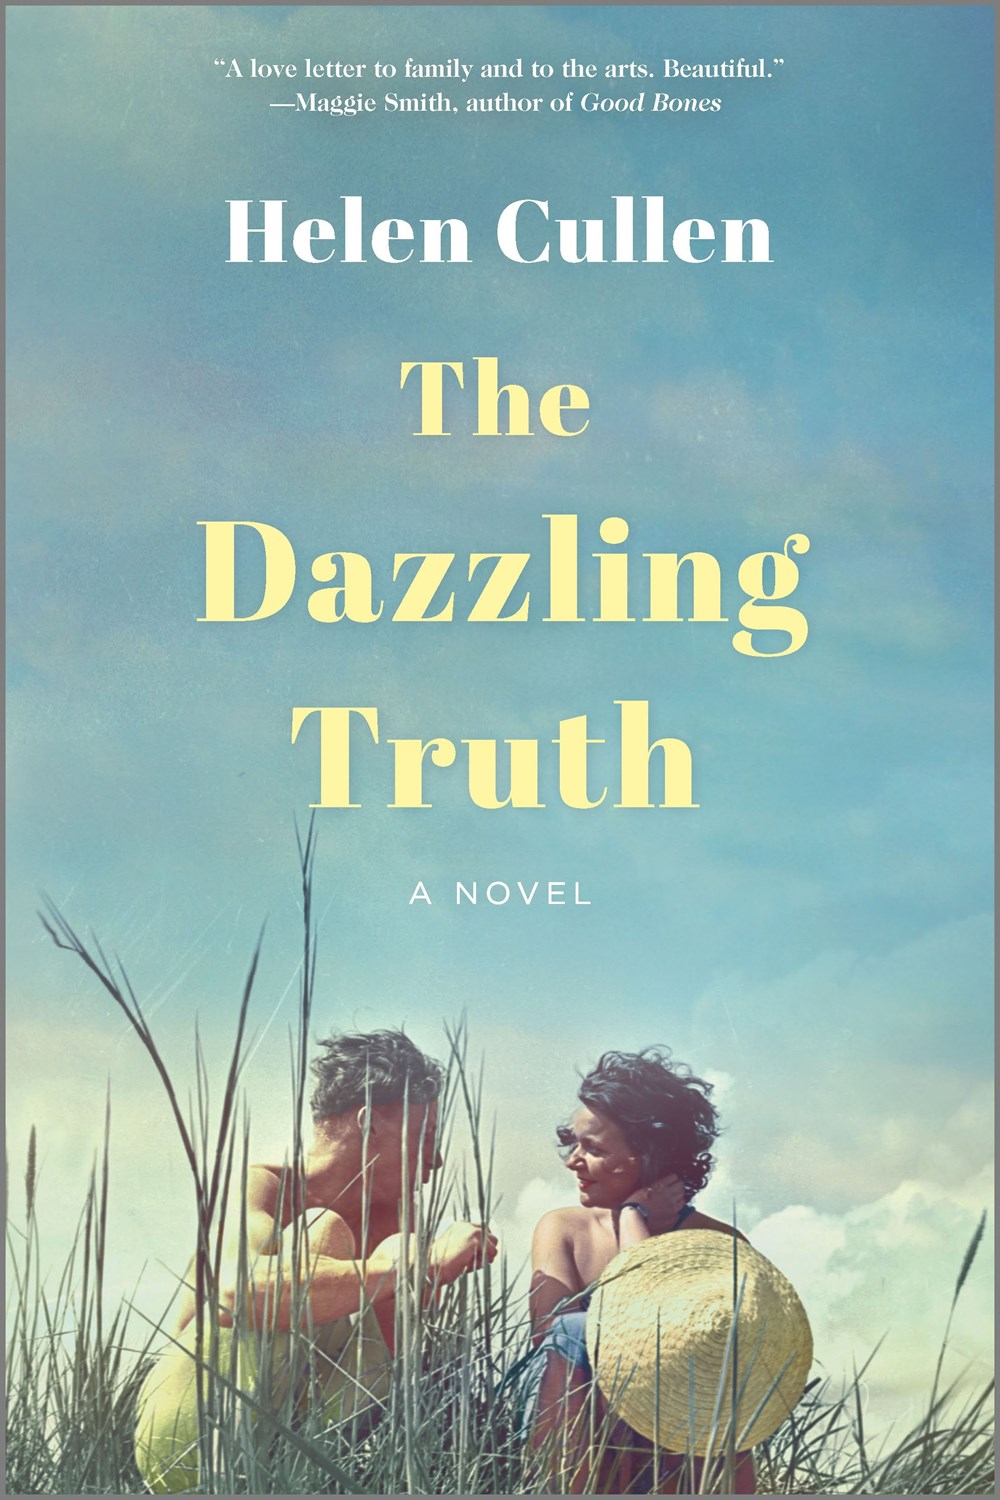 The Dazzling Truth: A Novel